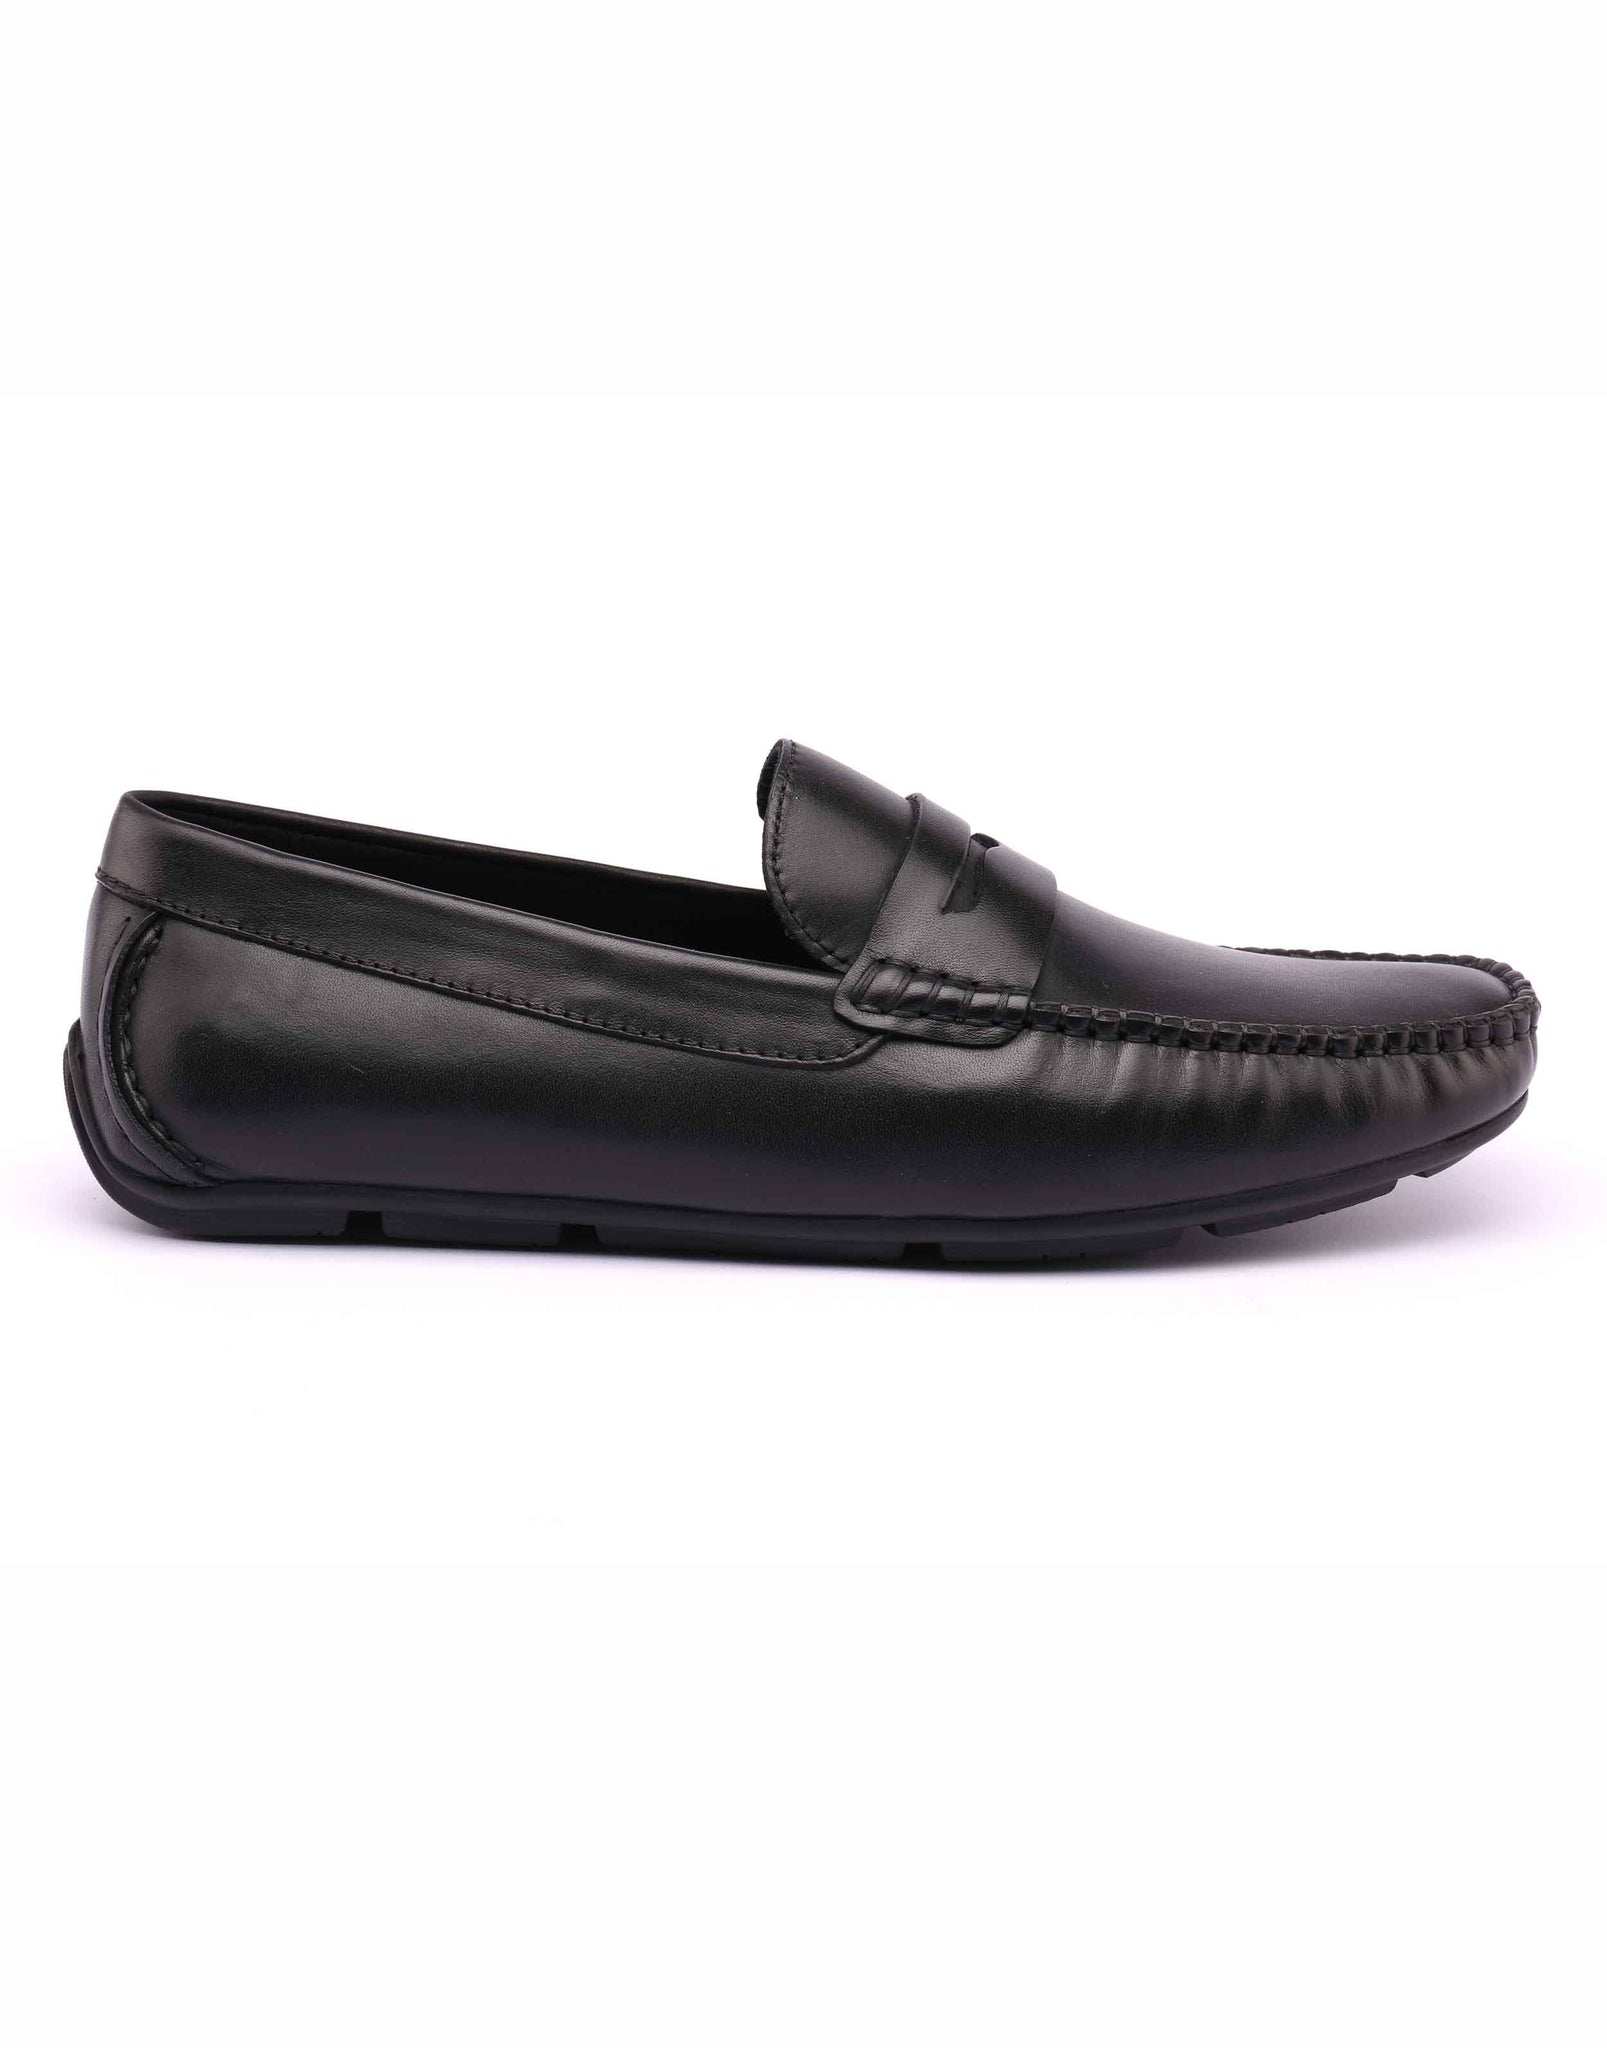 Black Whip Stitched Penny Loafer